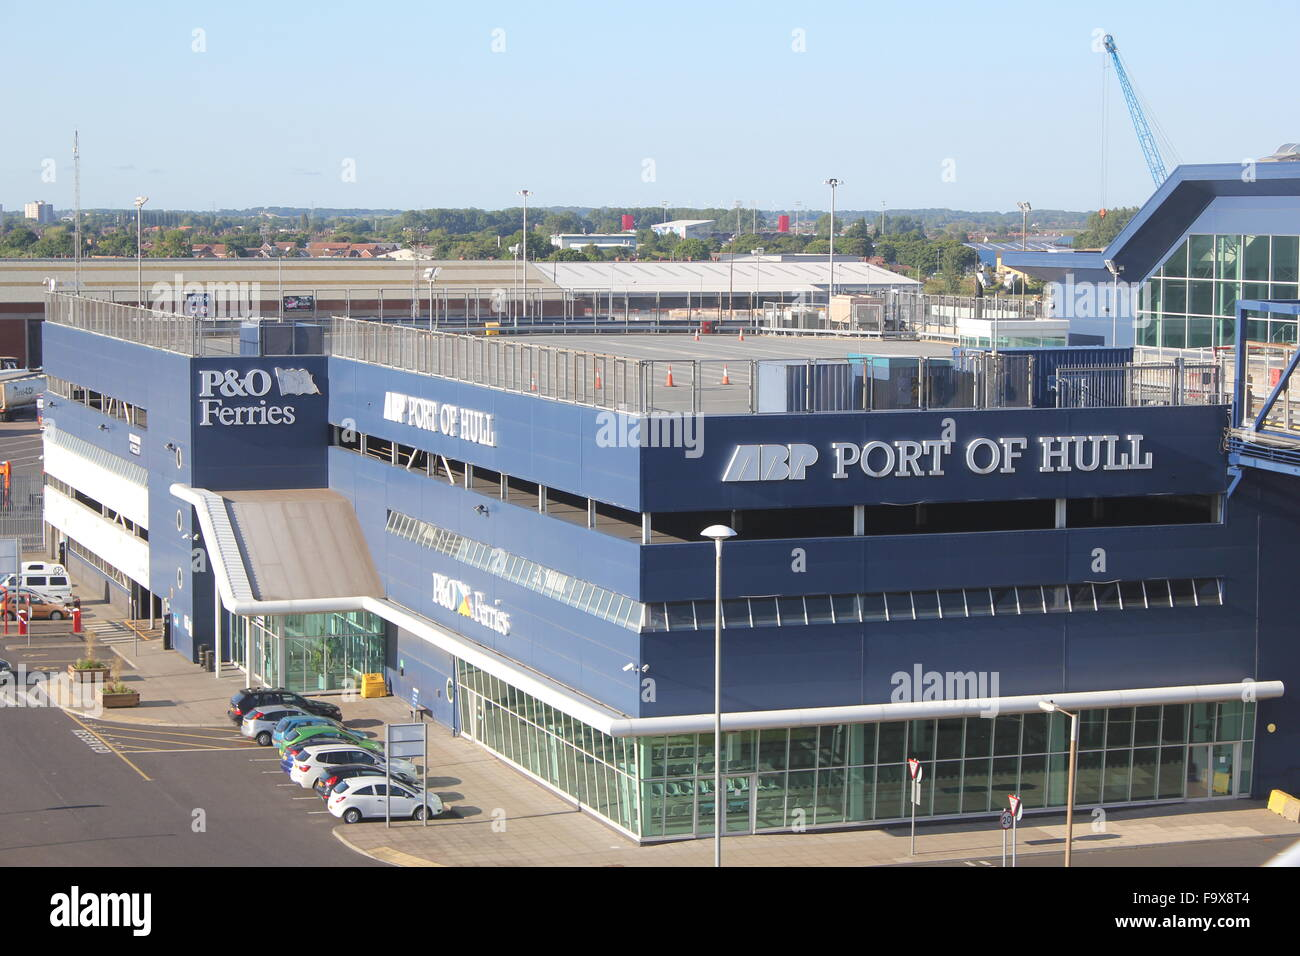 P&O Ferries at the port of Hull - Stock Image